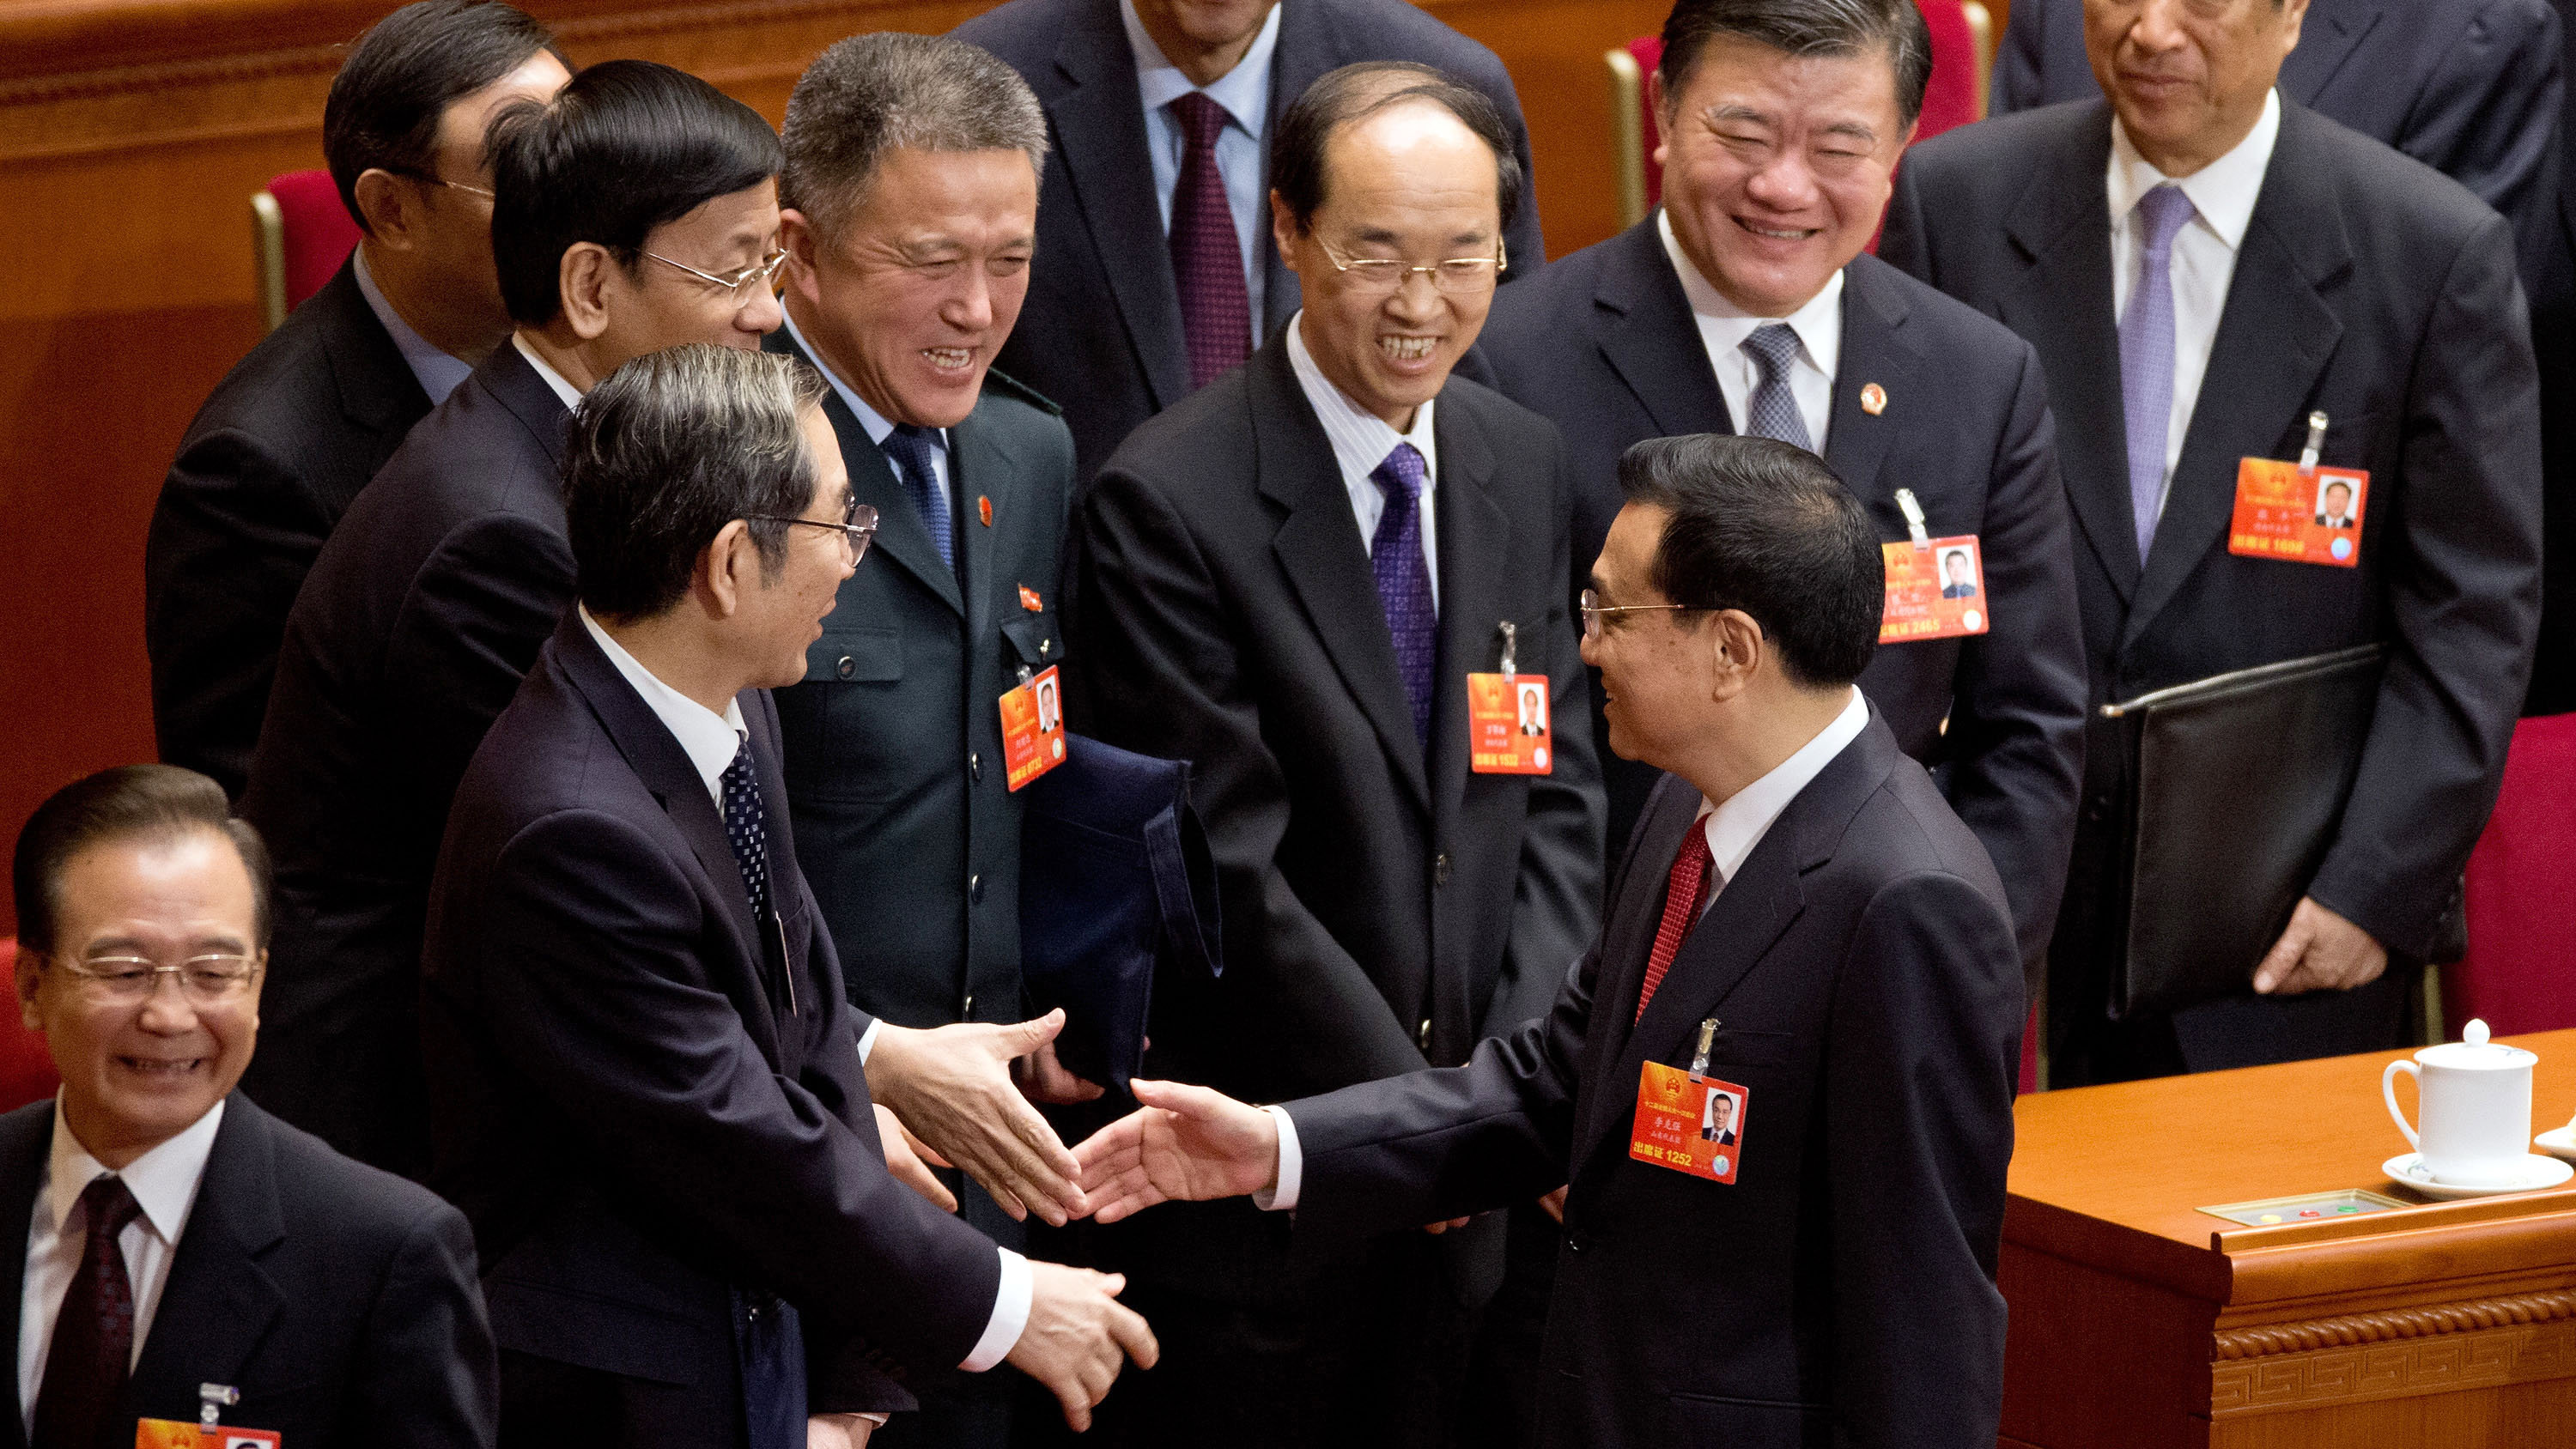 New Chinese Premier Li Keqiang, center, is greeted by delegates while his predecessor Wen Jiabao, left, walks away after a plenary session of the National People's Congress at the Great Hall of the People in Beijing Friday, March 15, 2013. China named the Communist Party's No. 2 leader, Li, premier on Friday as a long-orchestrated leadership transition nears its end, leaving the new leaders to confront uneven economic growth, unbridled corruption and a severely befouled environment that are stirring public discontent.